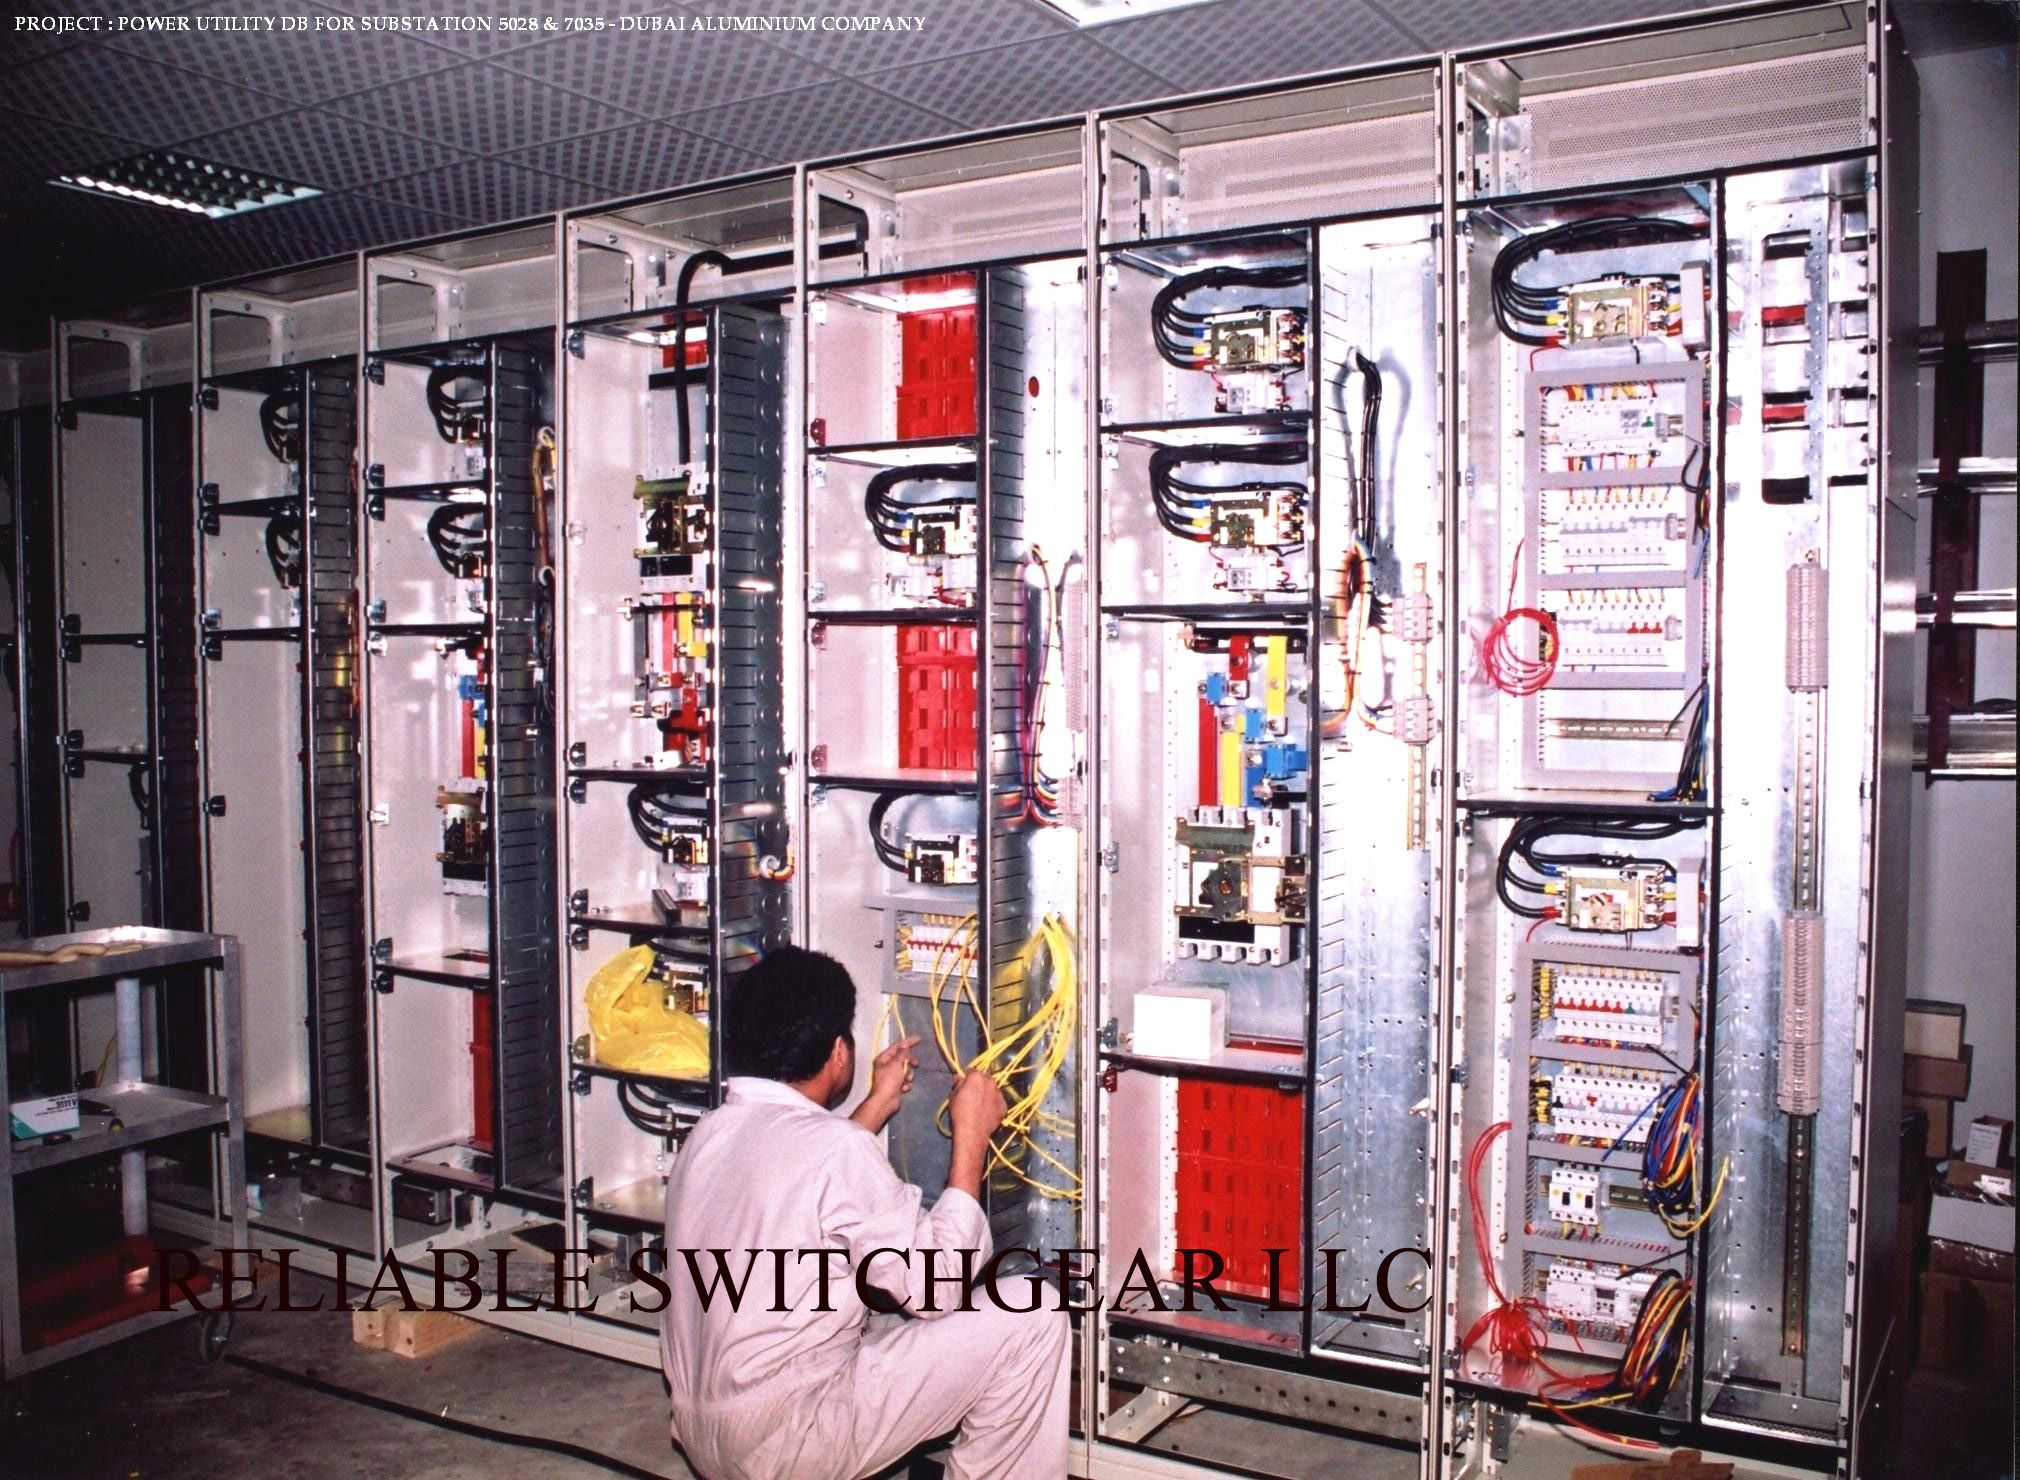 Reliable Switchgear